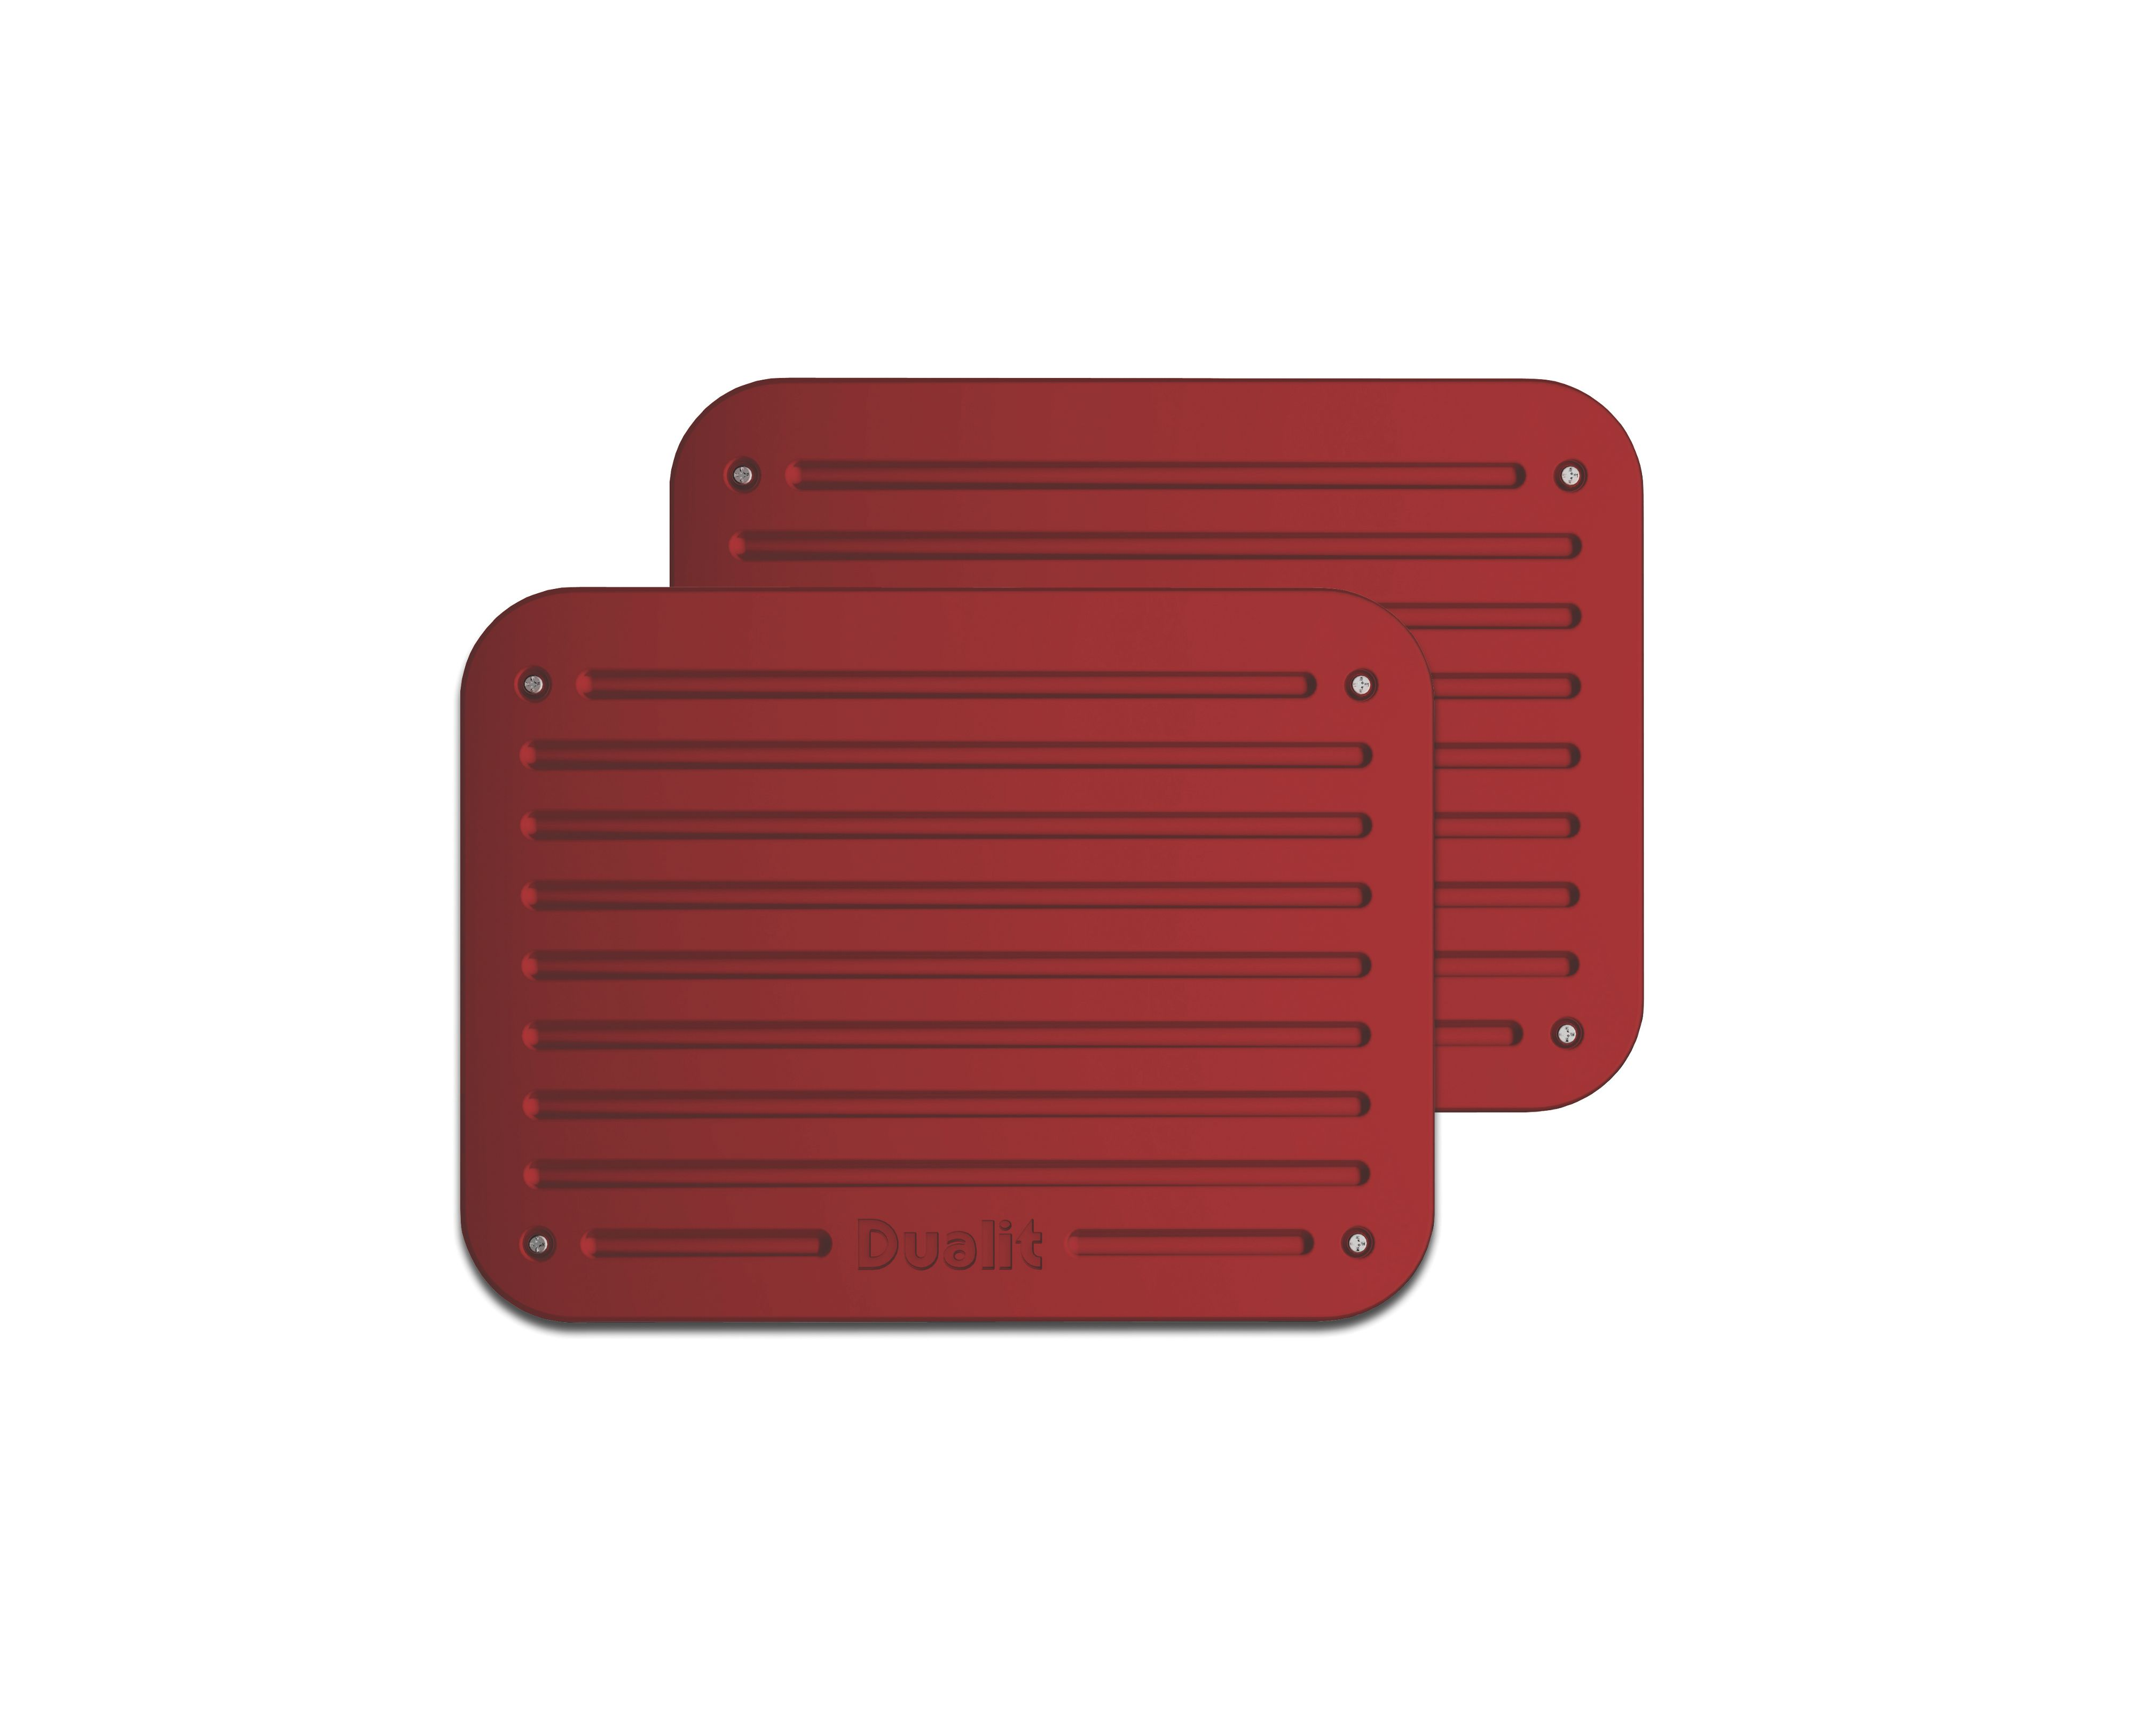 Candy apple red Architect toaster panel set